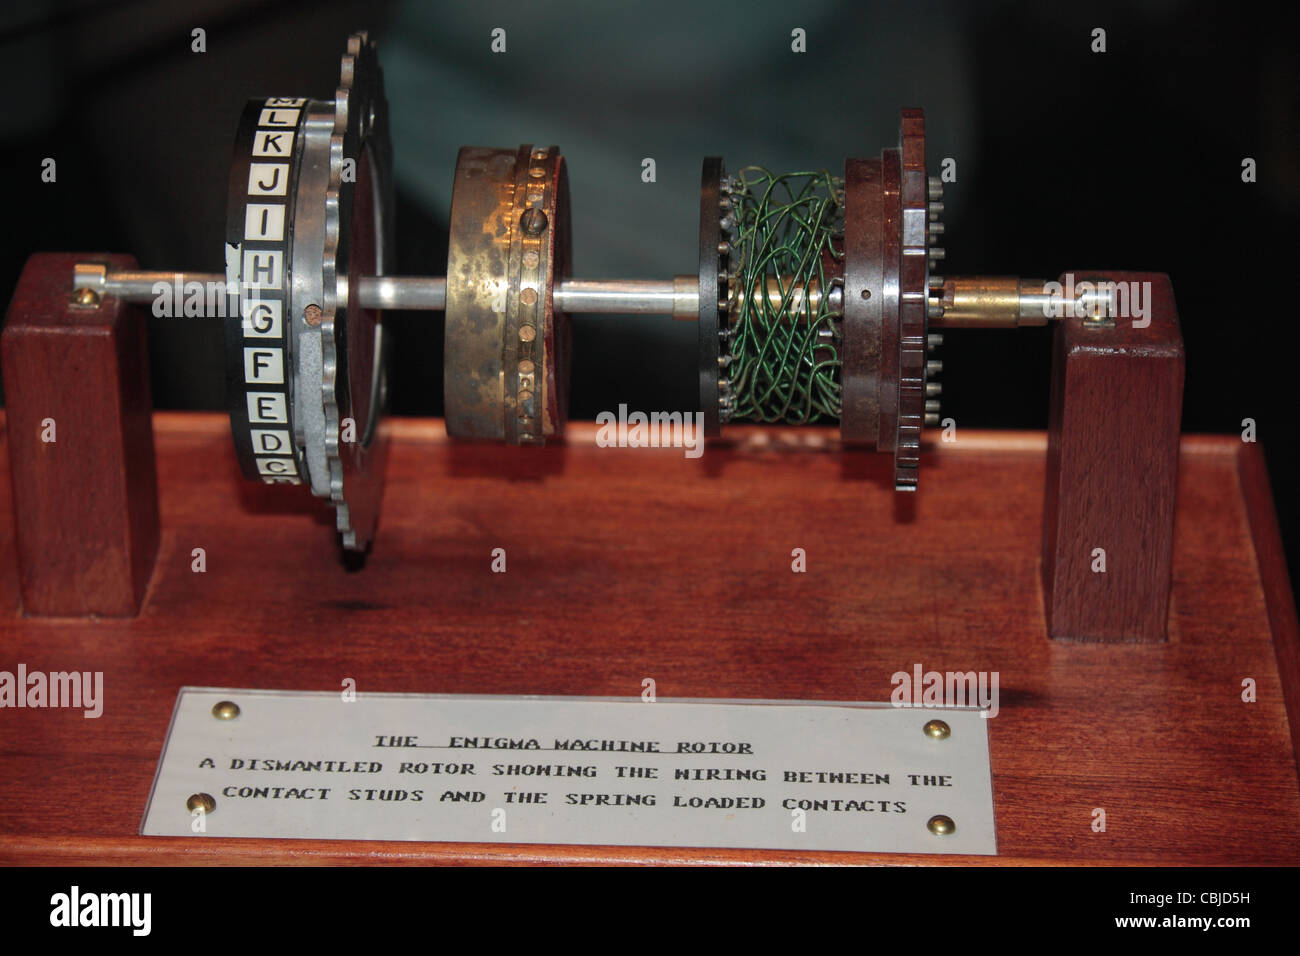 An Enigma machine rotor on display showing the internal ...